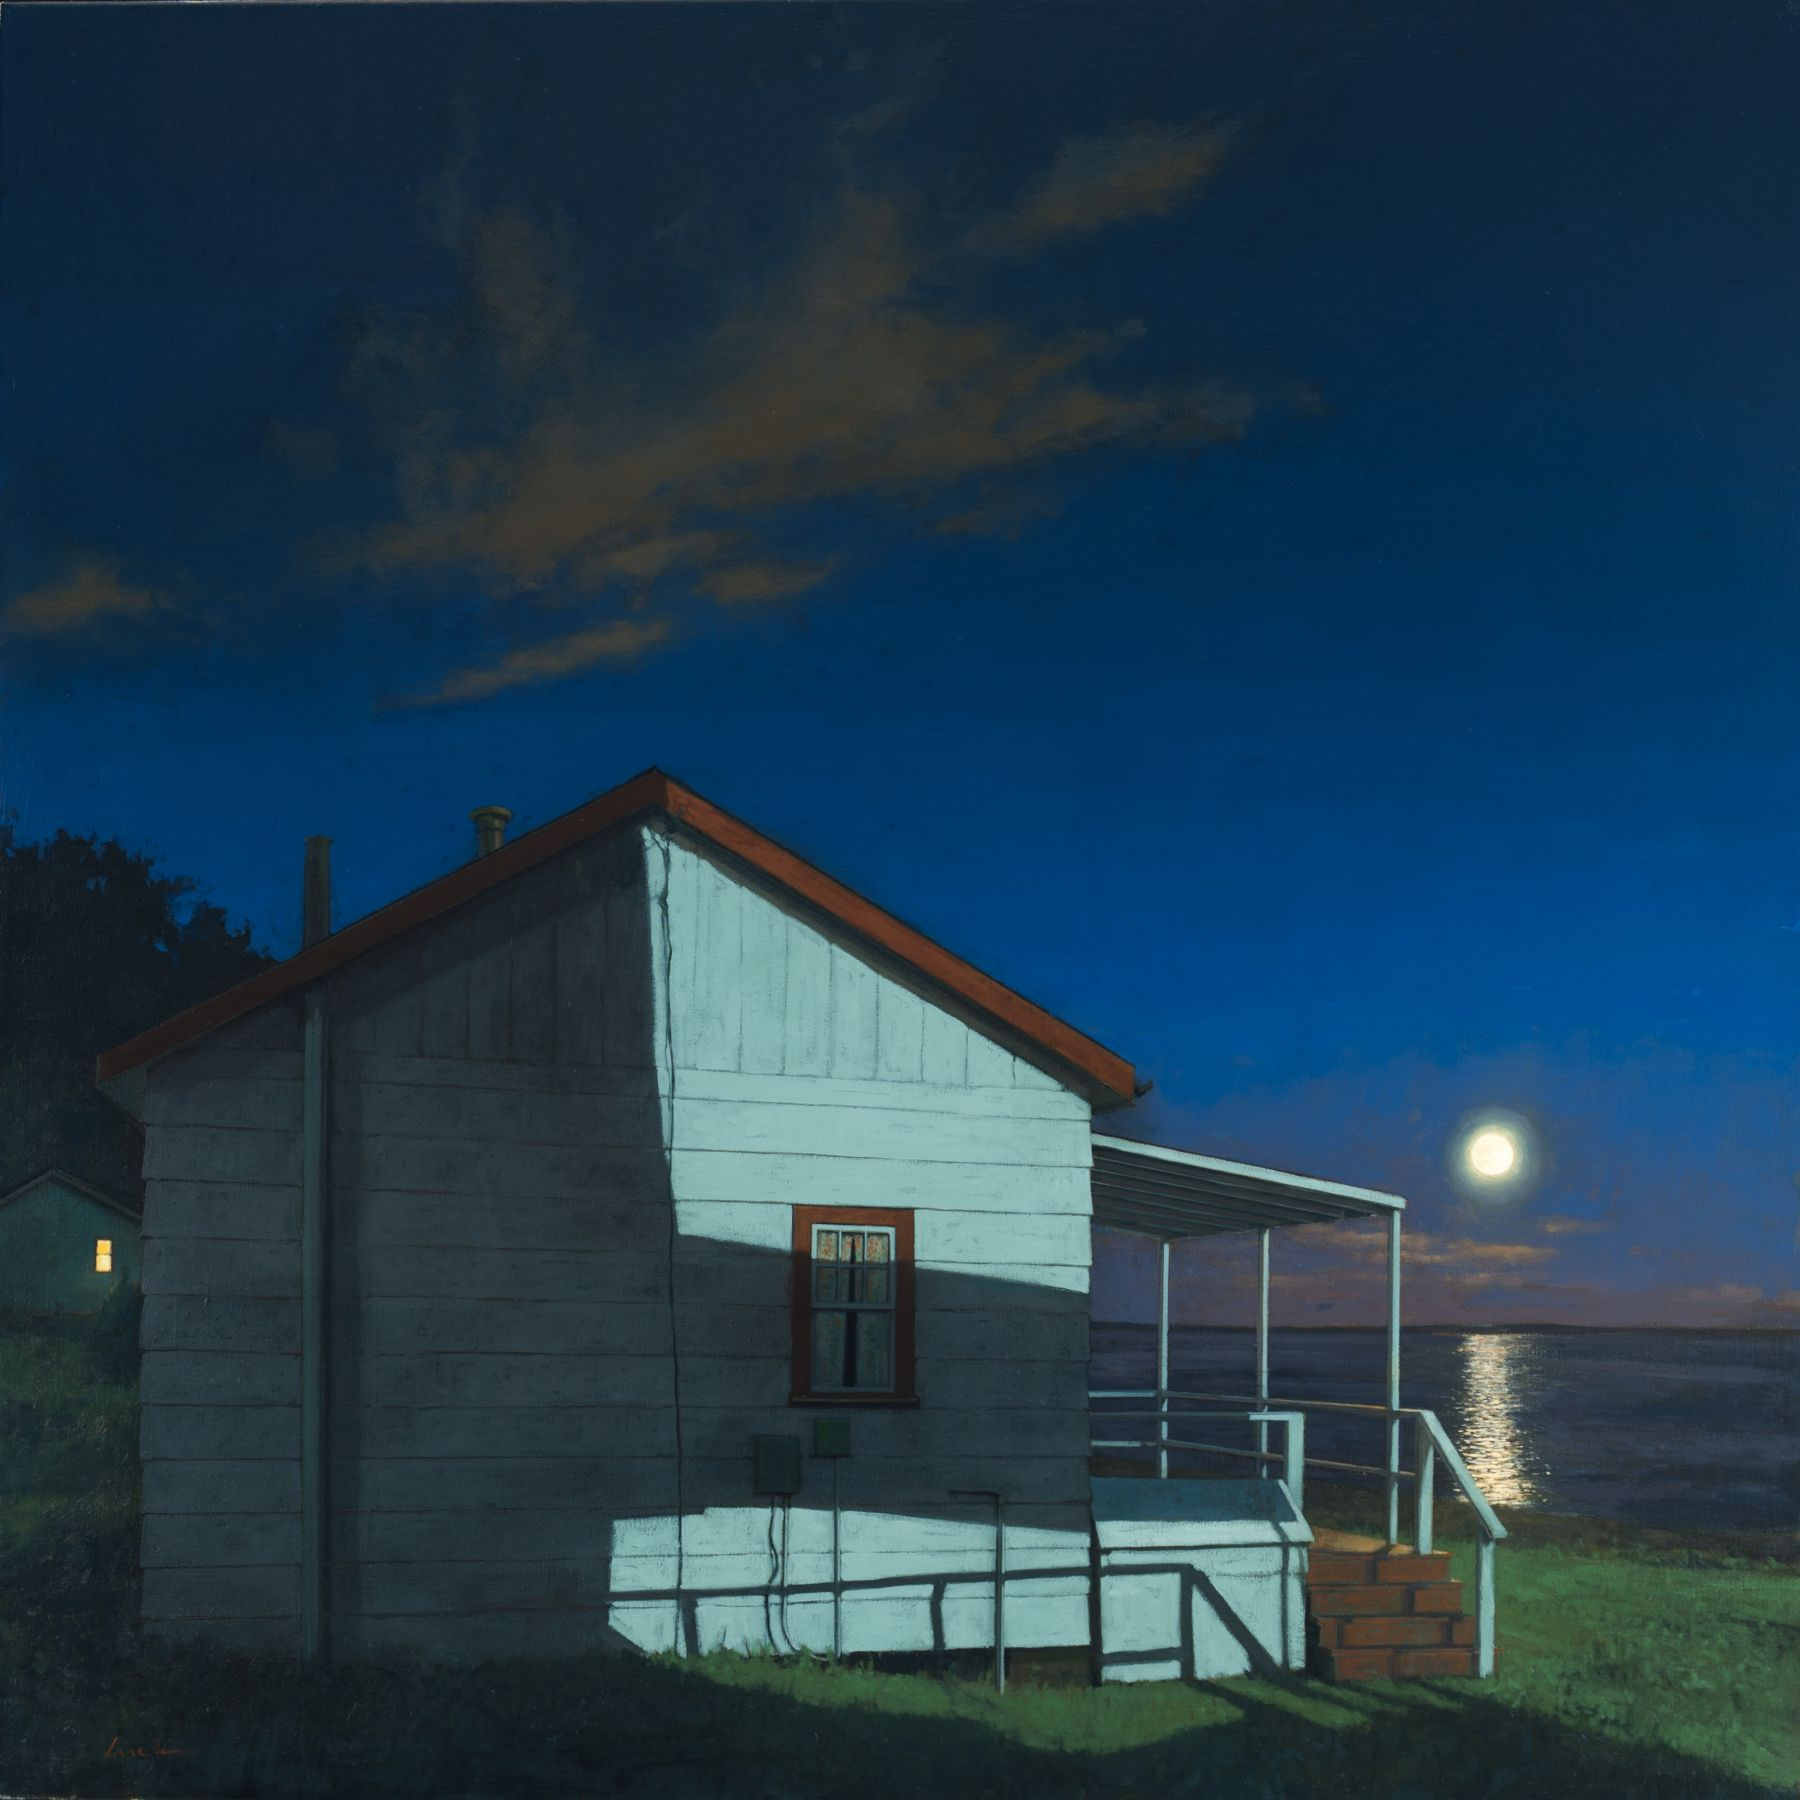 Linden Frederick Seasonal (SOLD), 2010, oil on linen, 40 x 40 inches